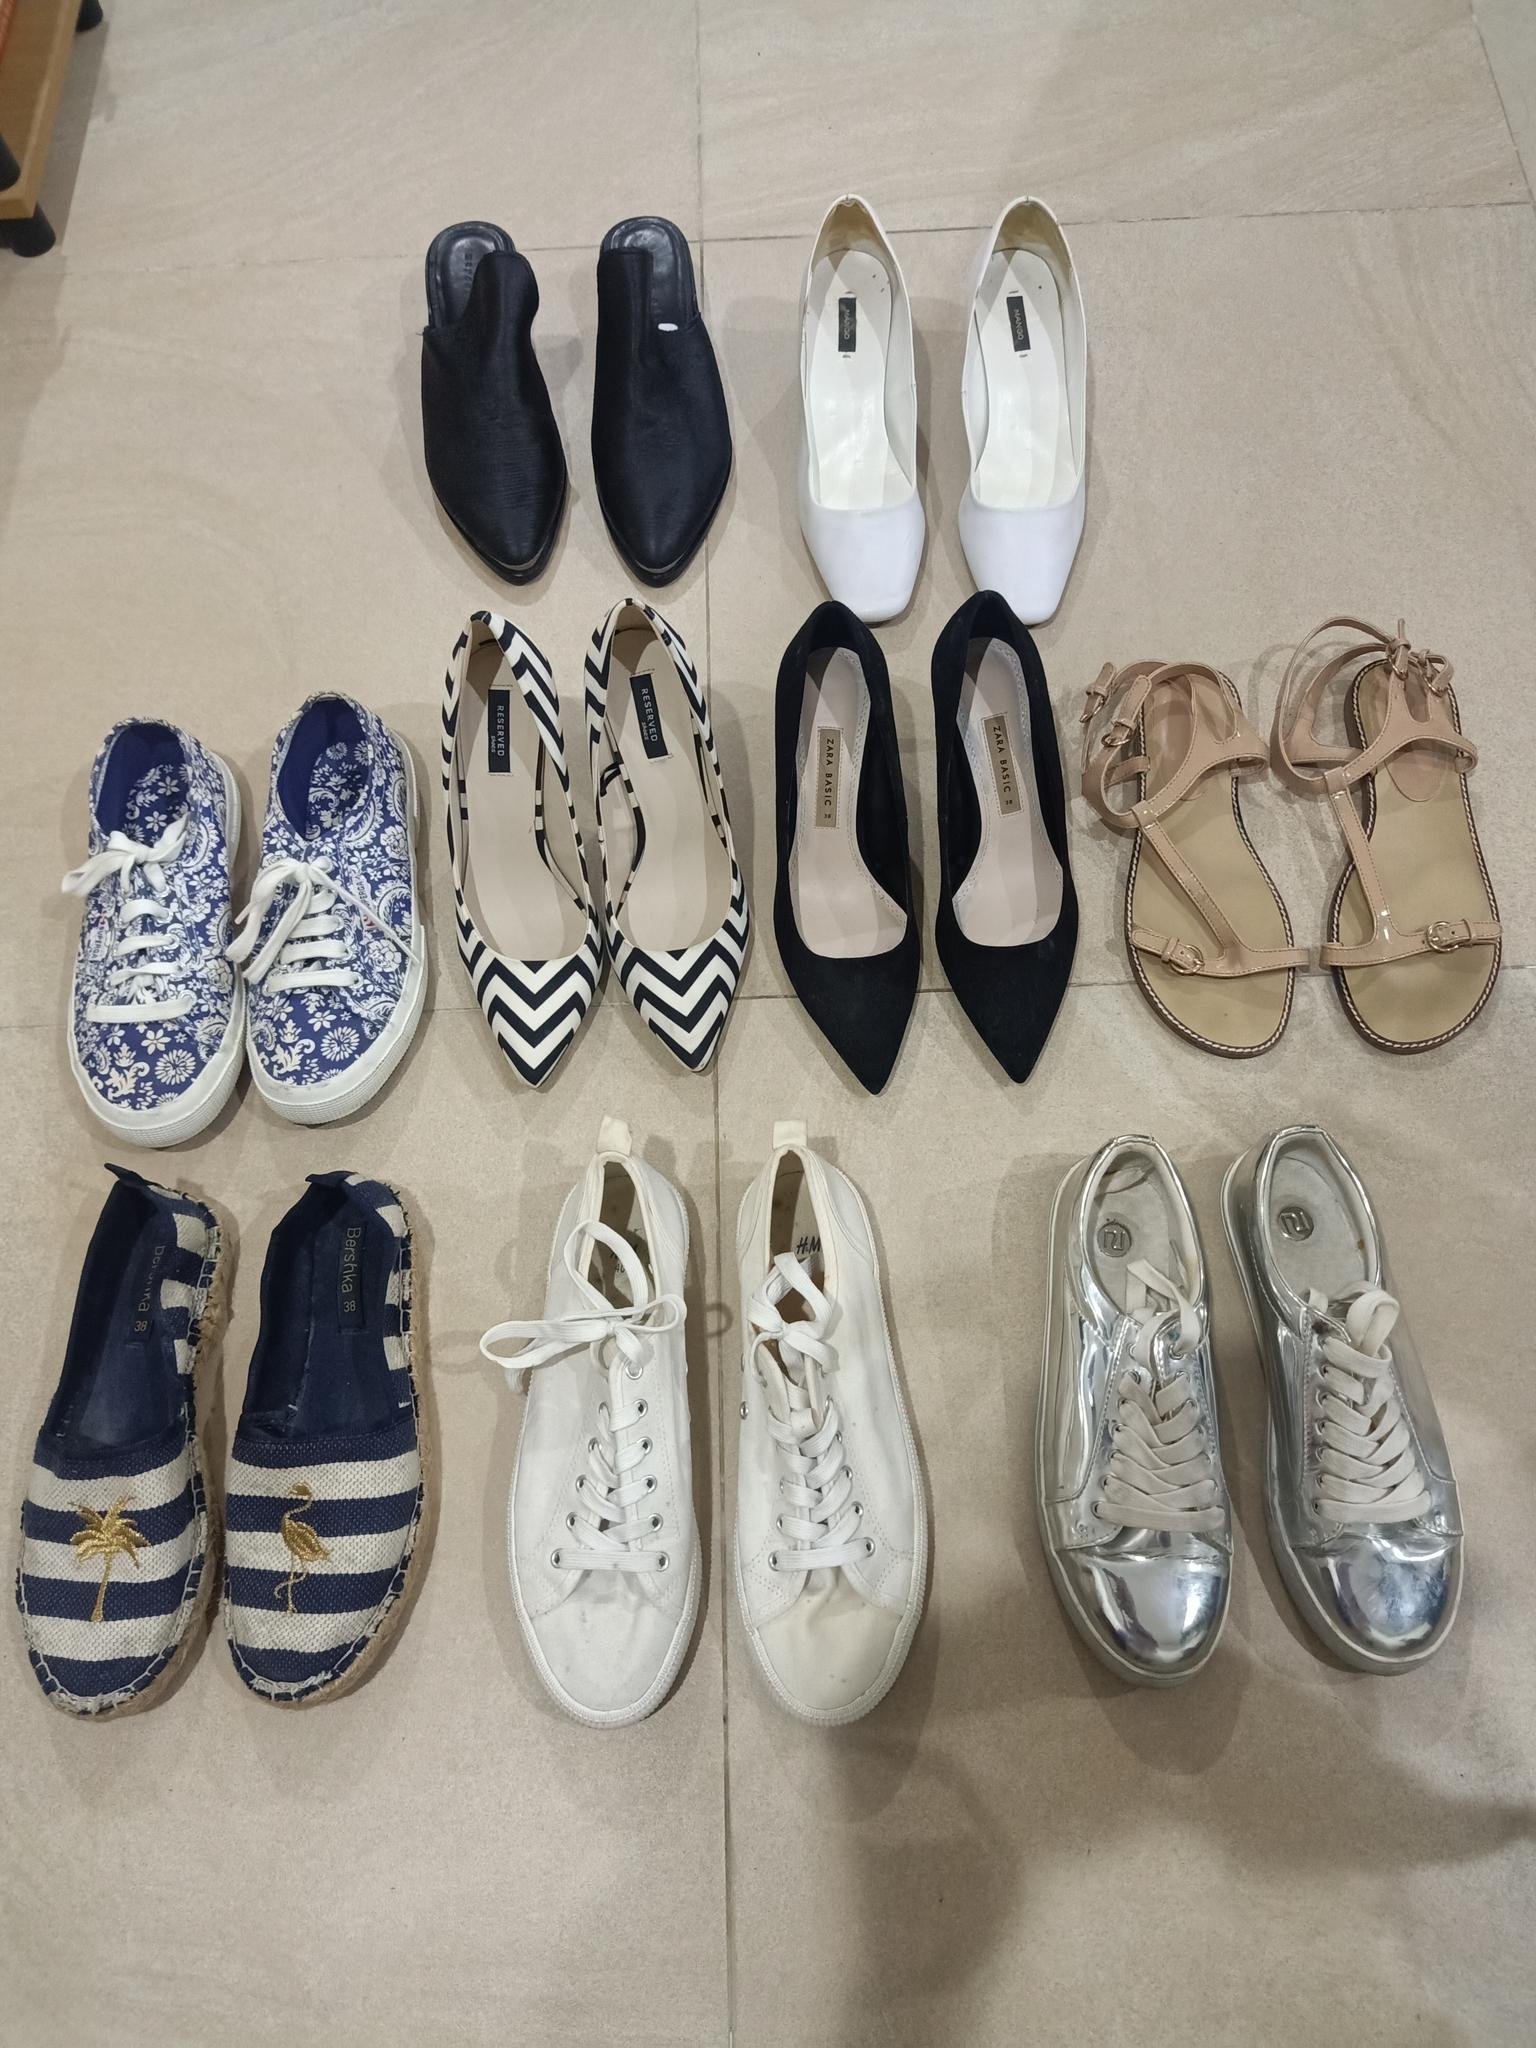 Branded shoes